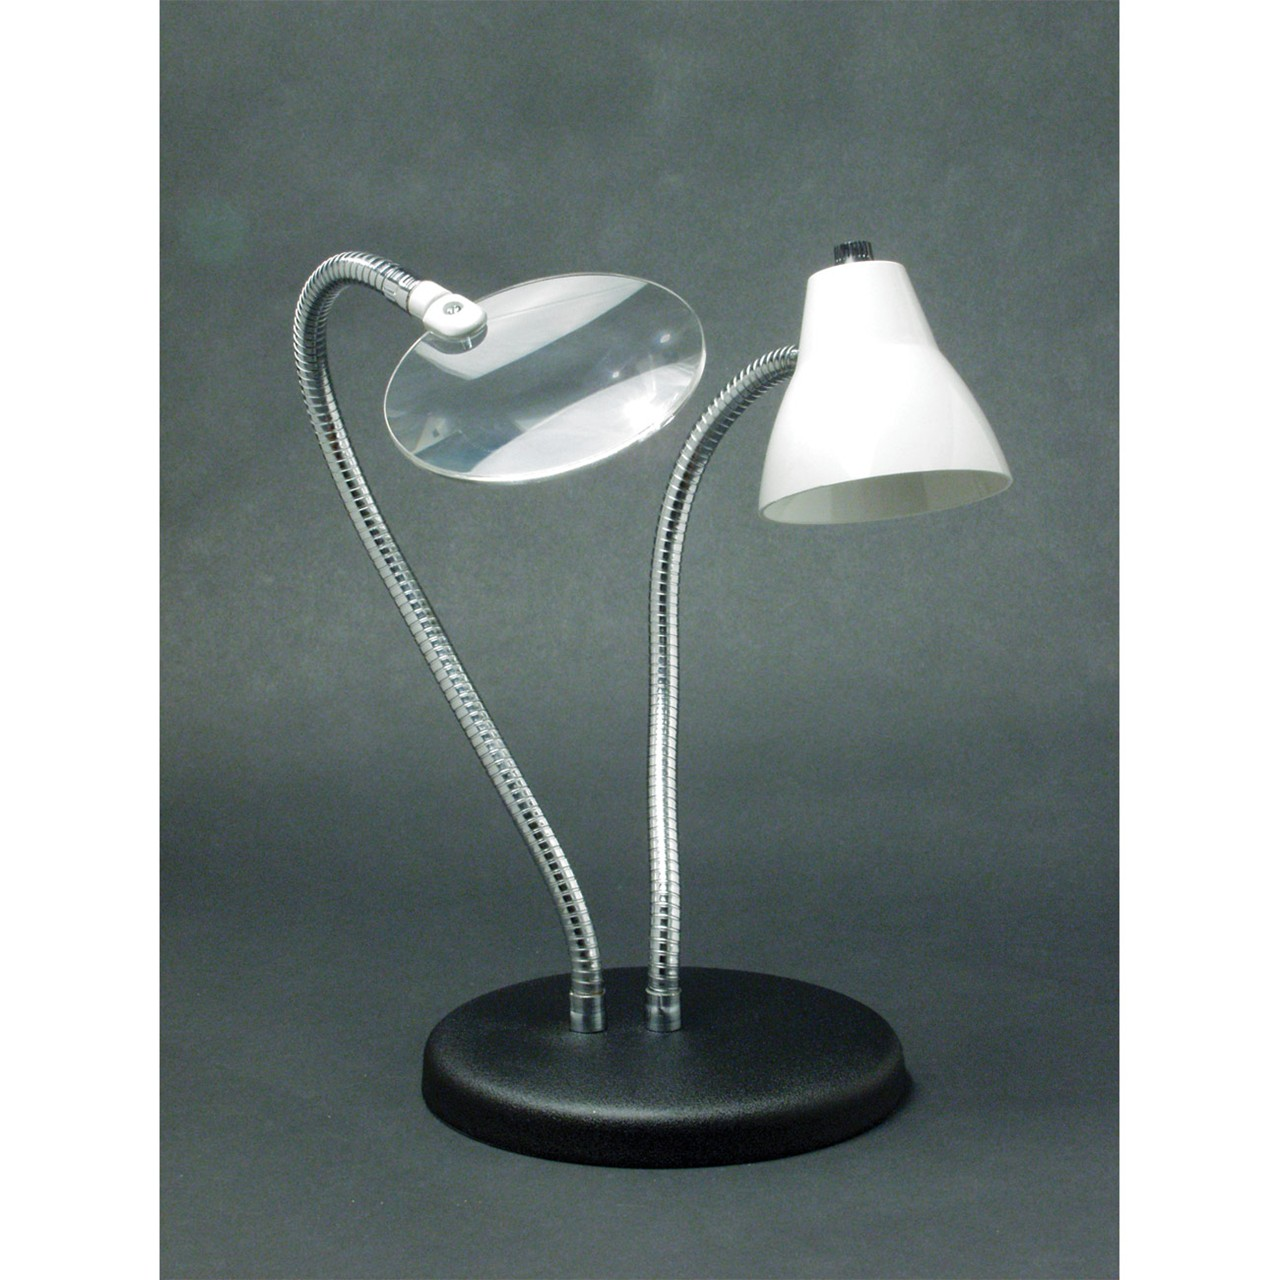 Maxiaids 2 Arm Combination Table Lamp And 2x Magnifier